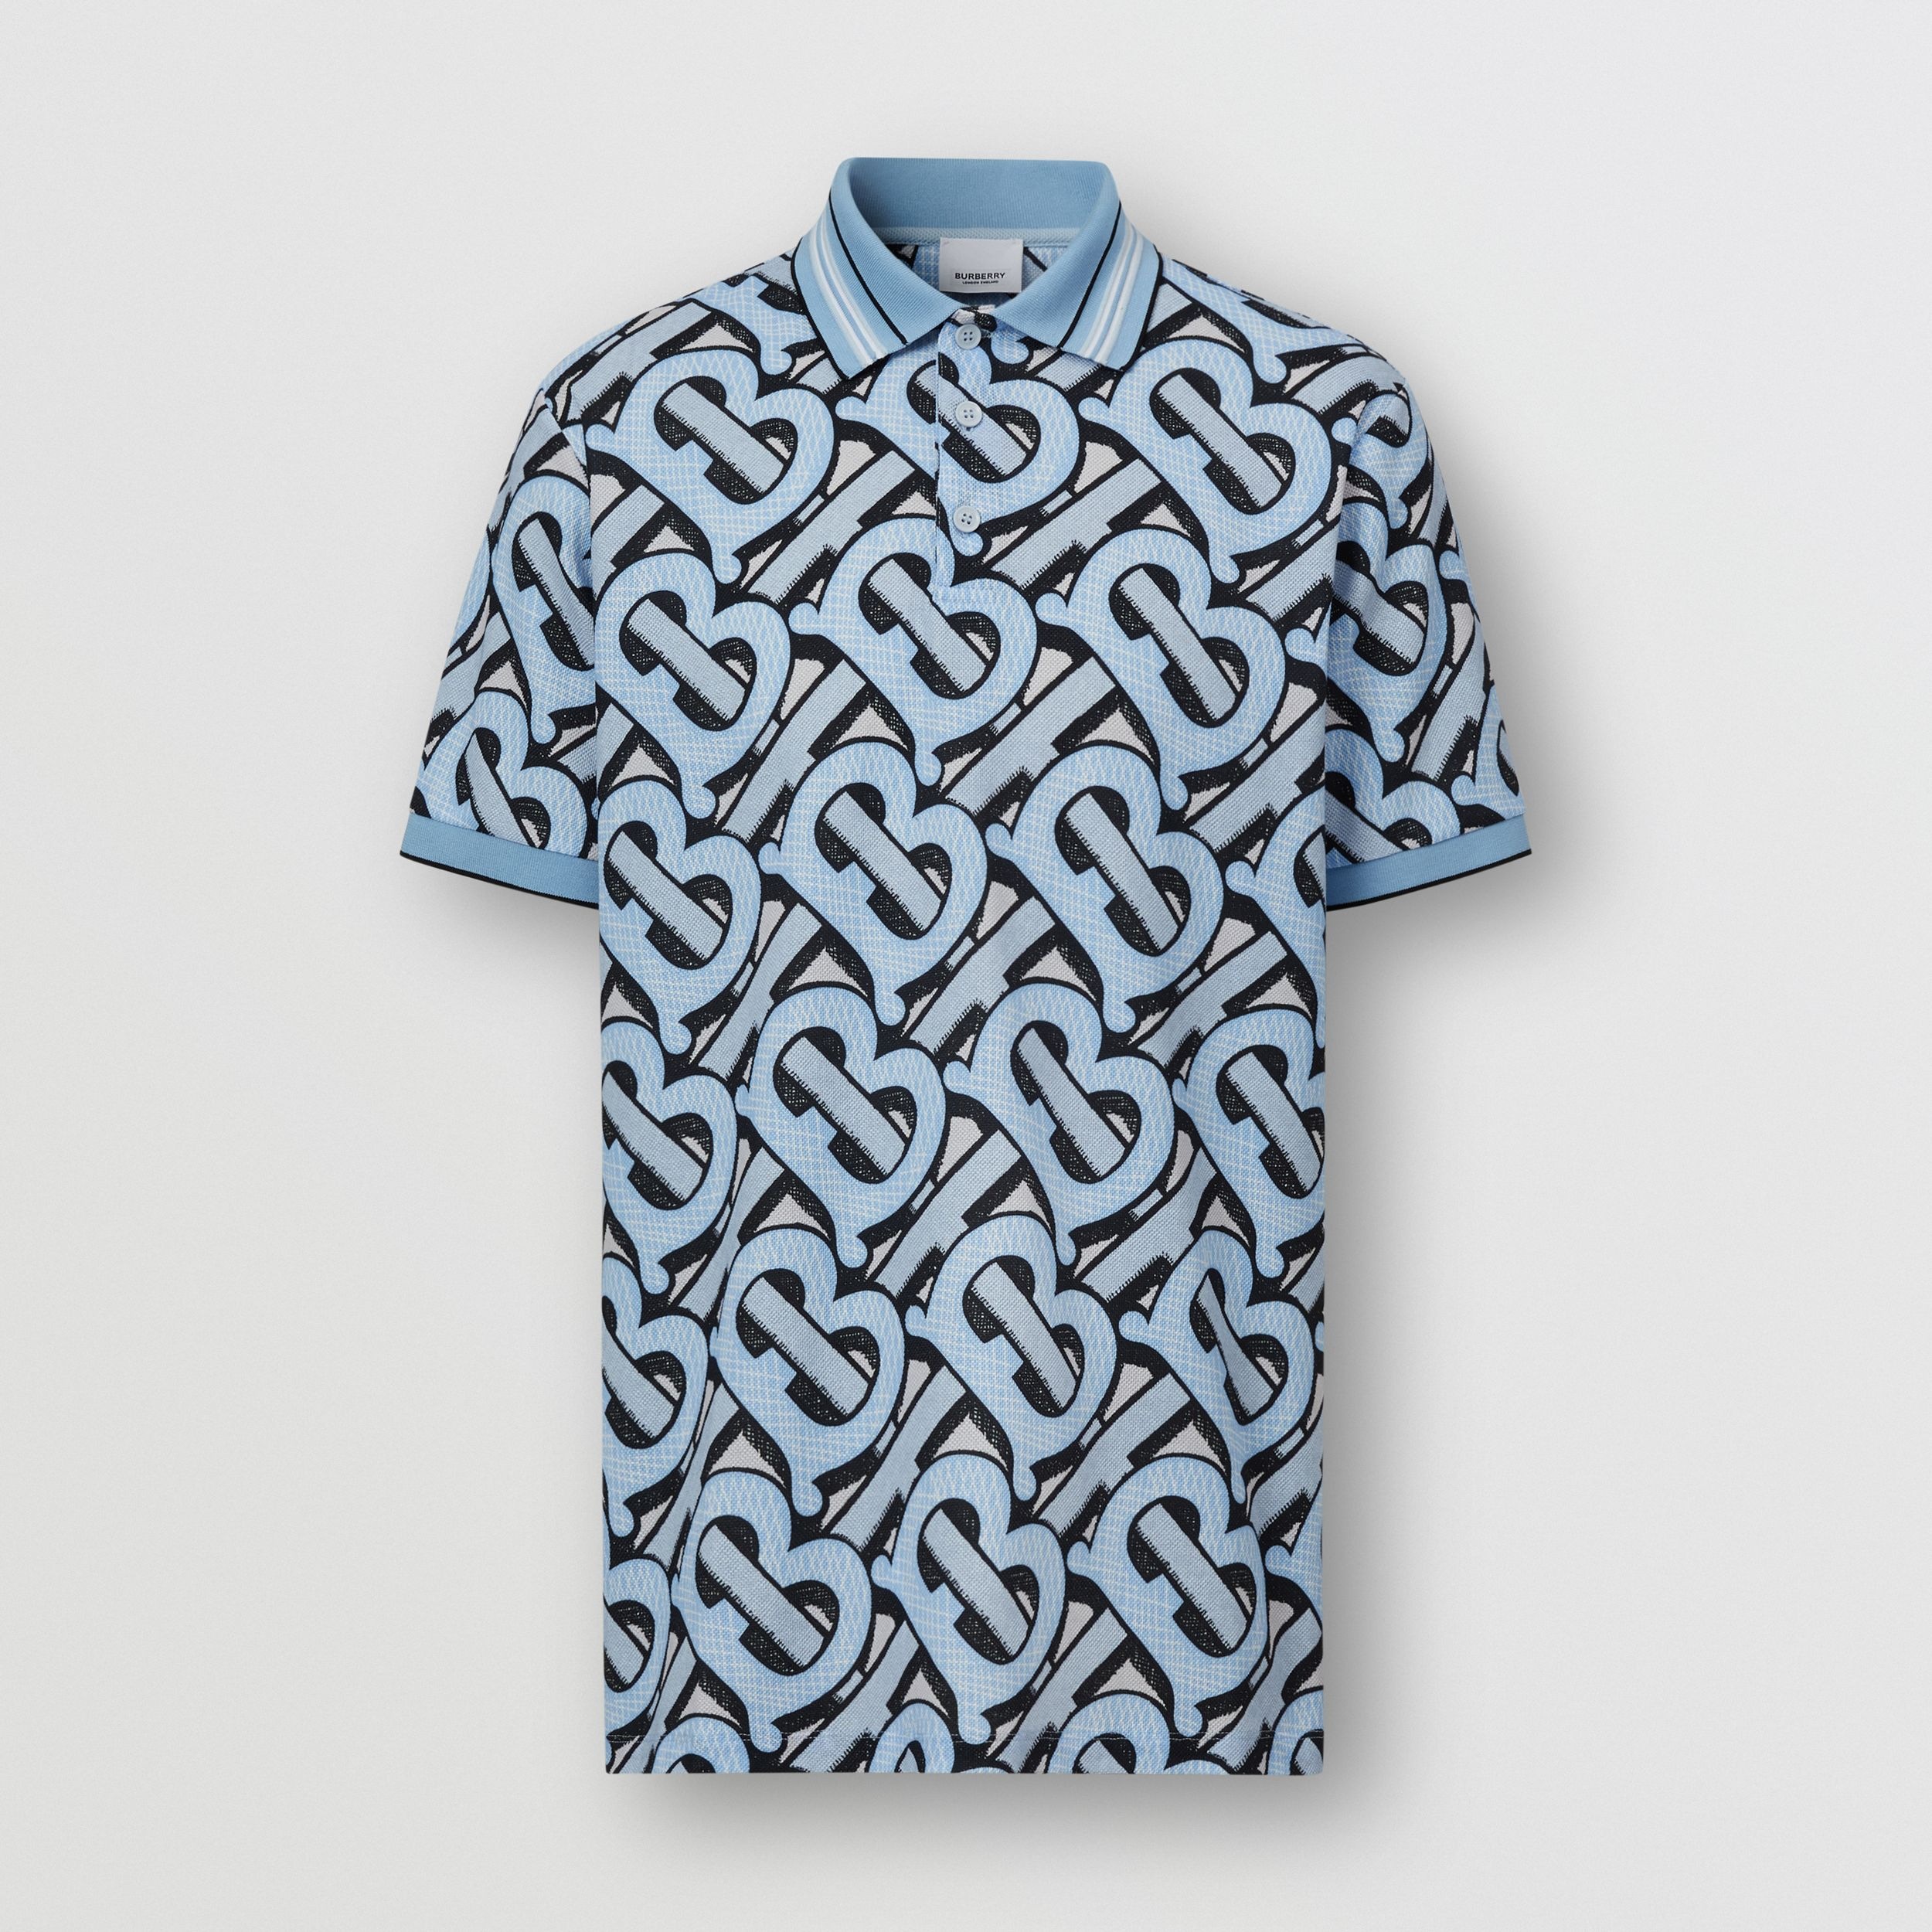 Monogram Print Cotton Piqué Polo Shirt – Unisex in Pale Azure | Burberry United Kingdom - 1